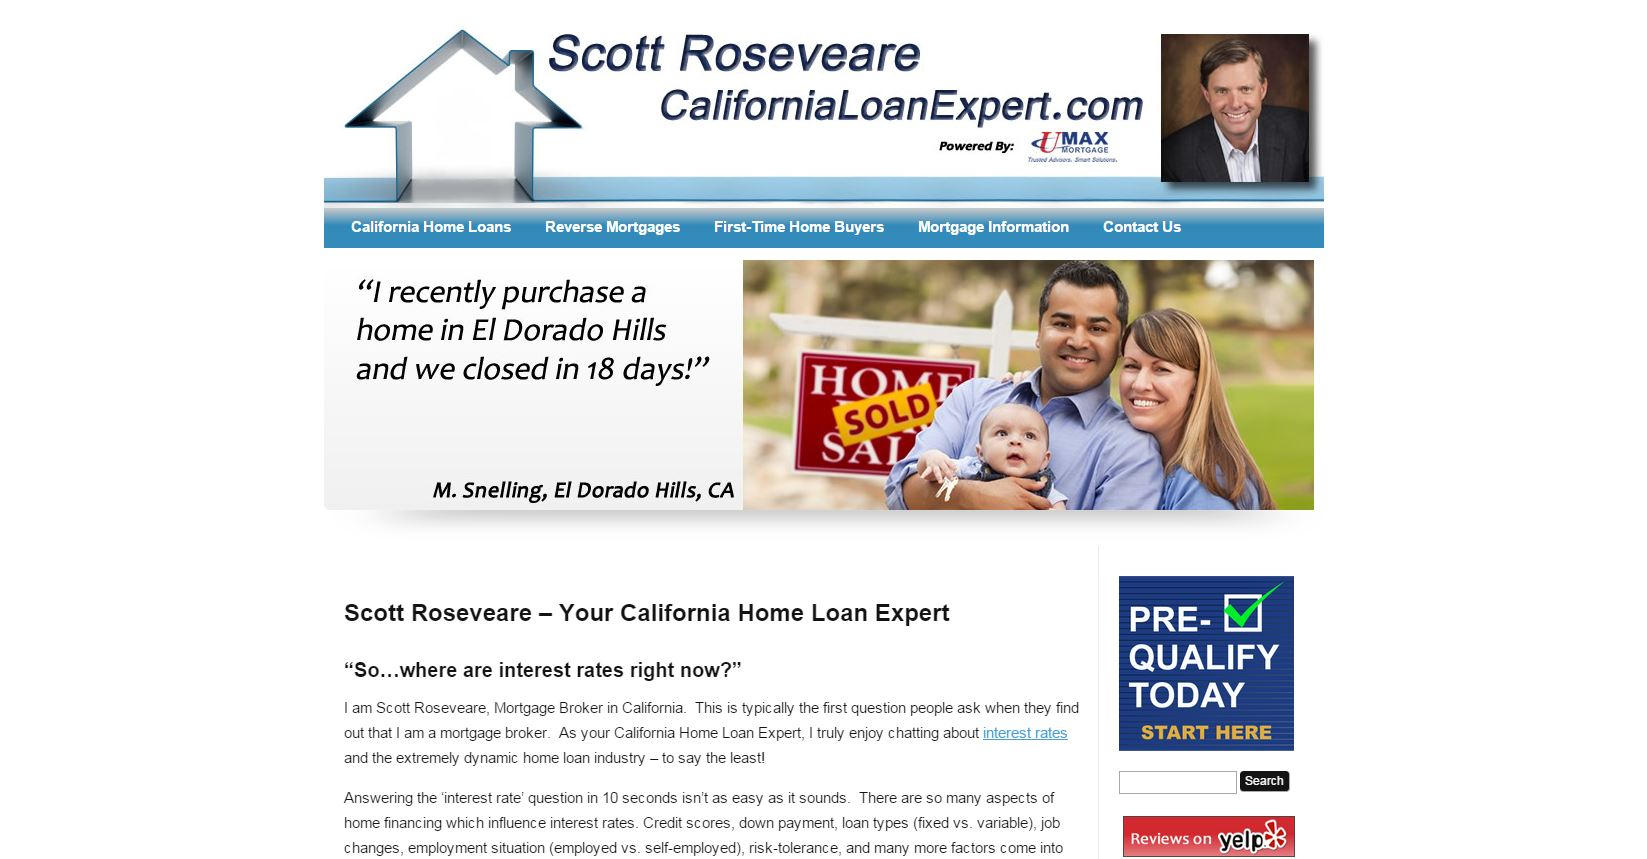 Screenshot of CaliforniaLoanExpert.com